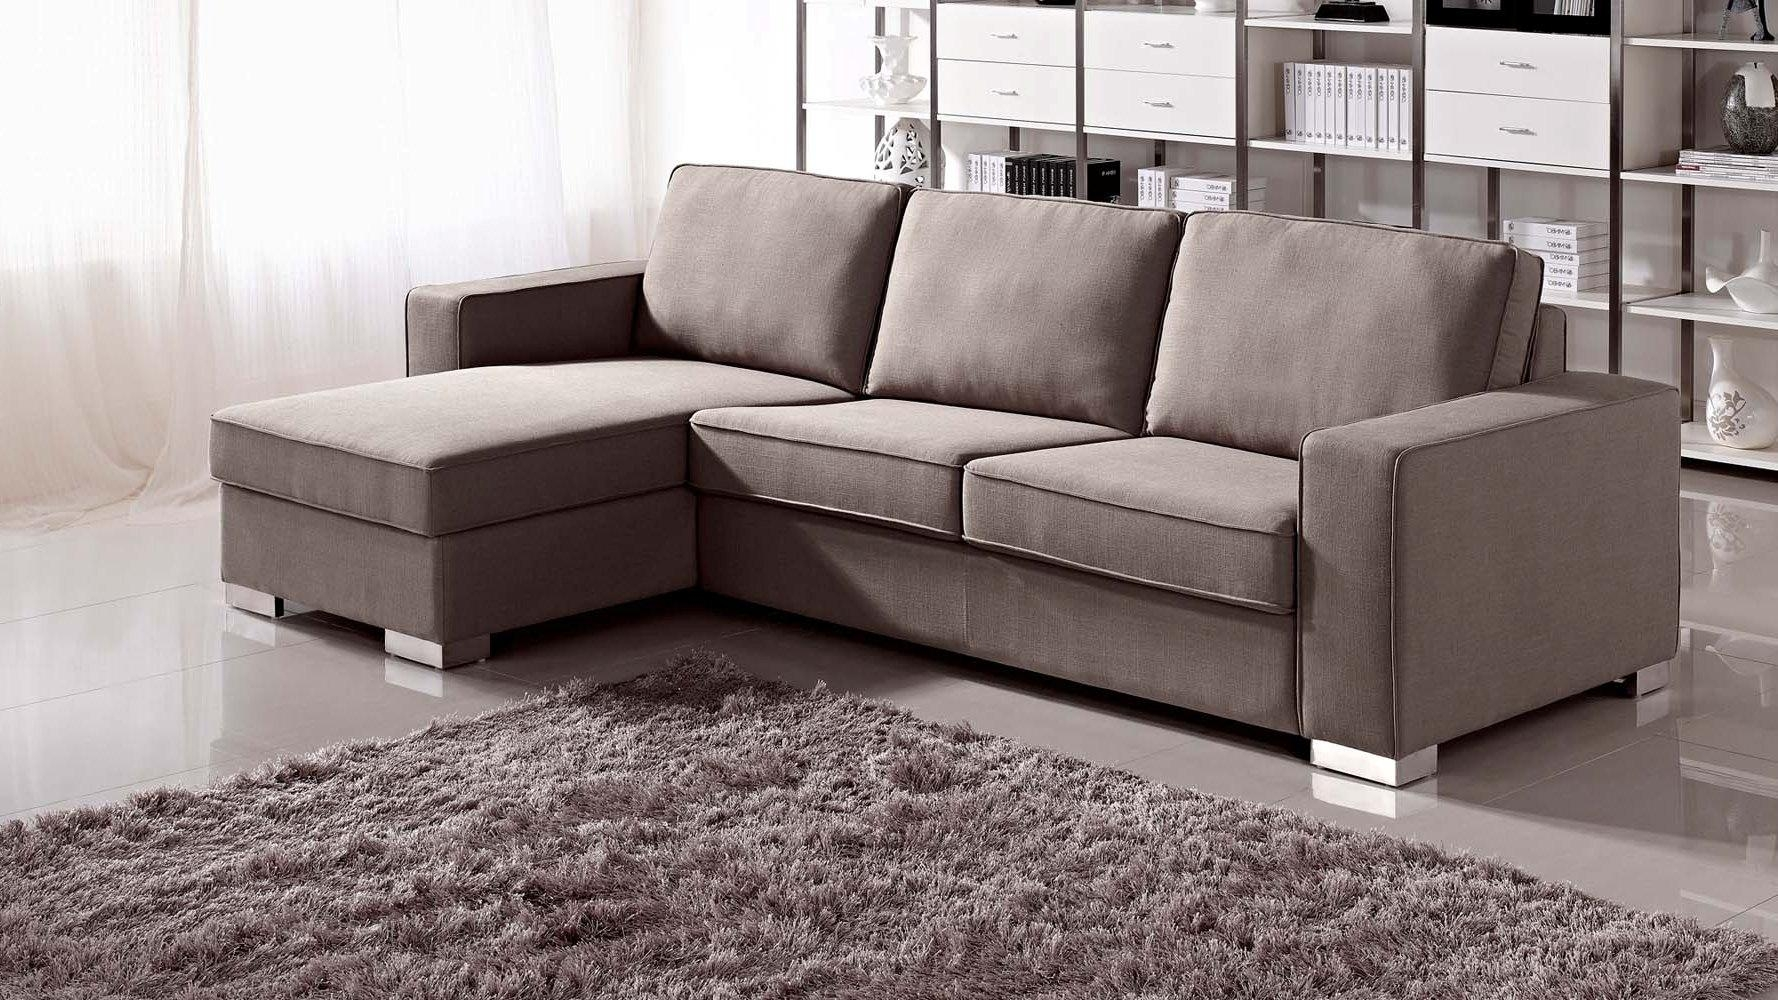 Sofas Center : Impressive Thomasville Sectional Sofas Photo Ideas Intended  For Thomasville Leather Sectionals (Image